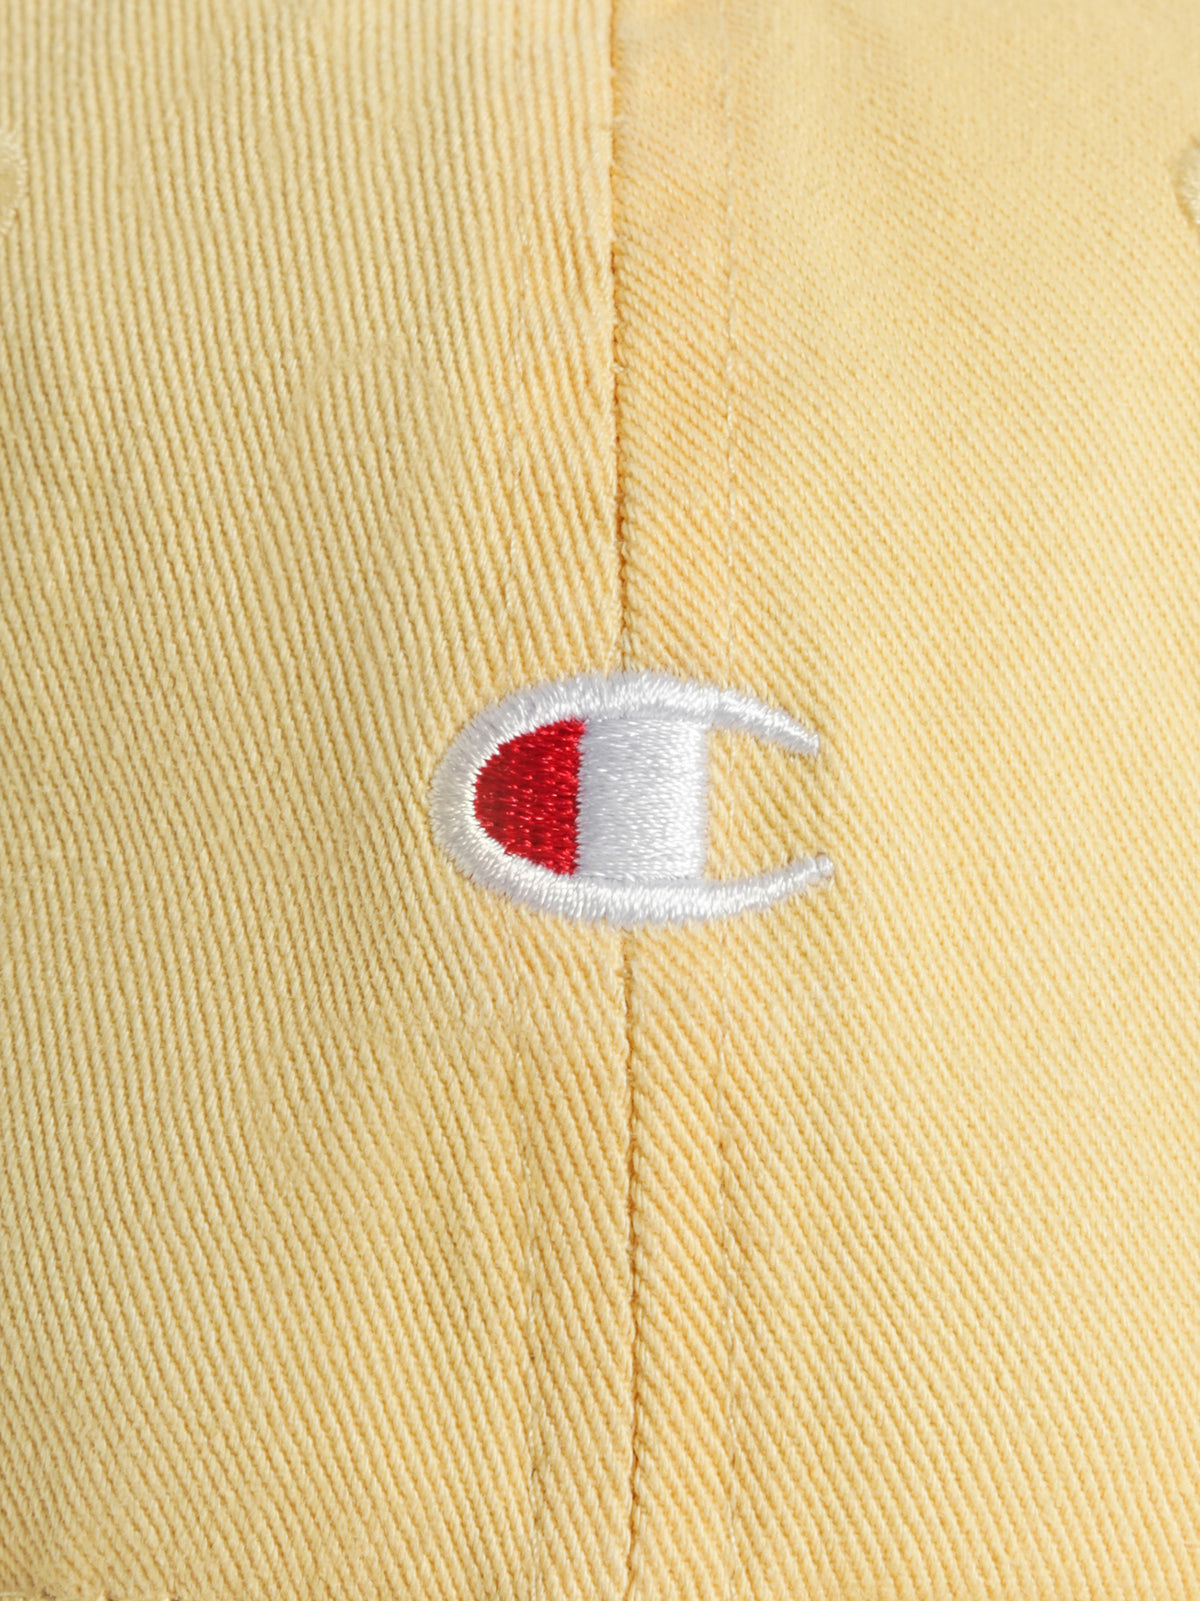 C Logo Vintage Cap in Crash Bandicoot Yellow